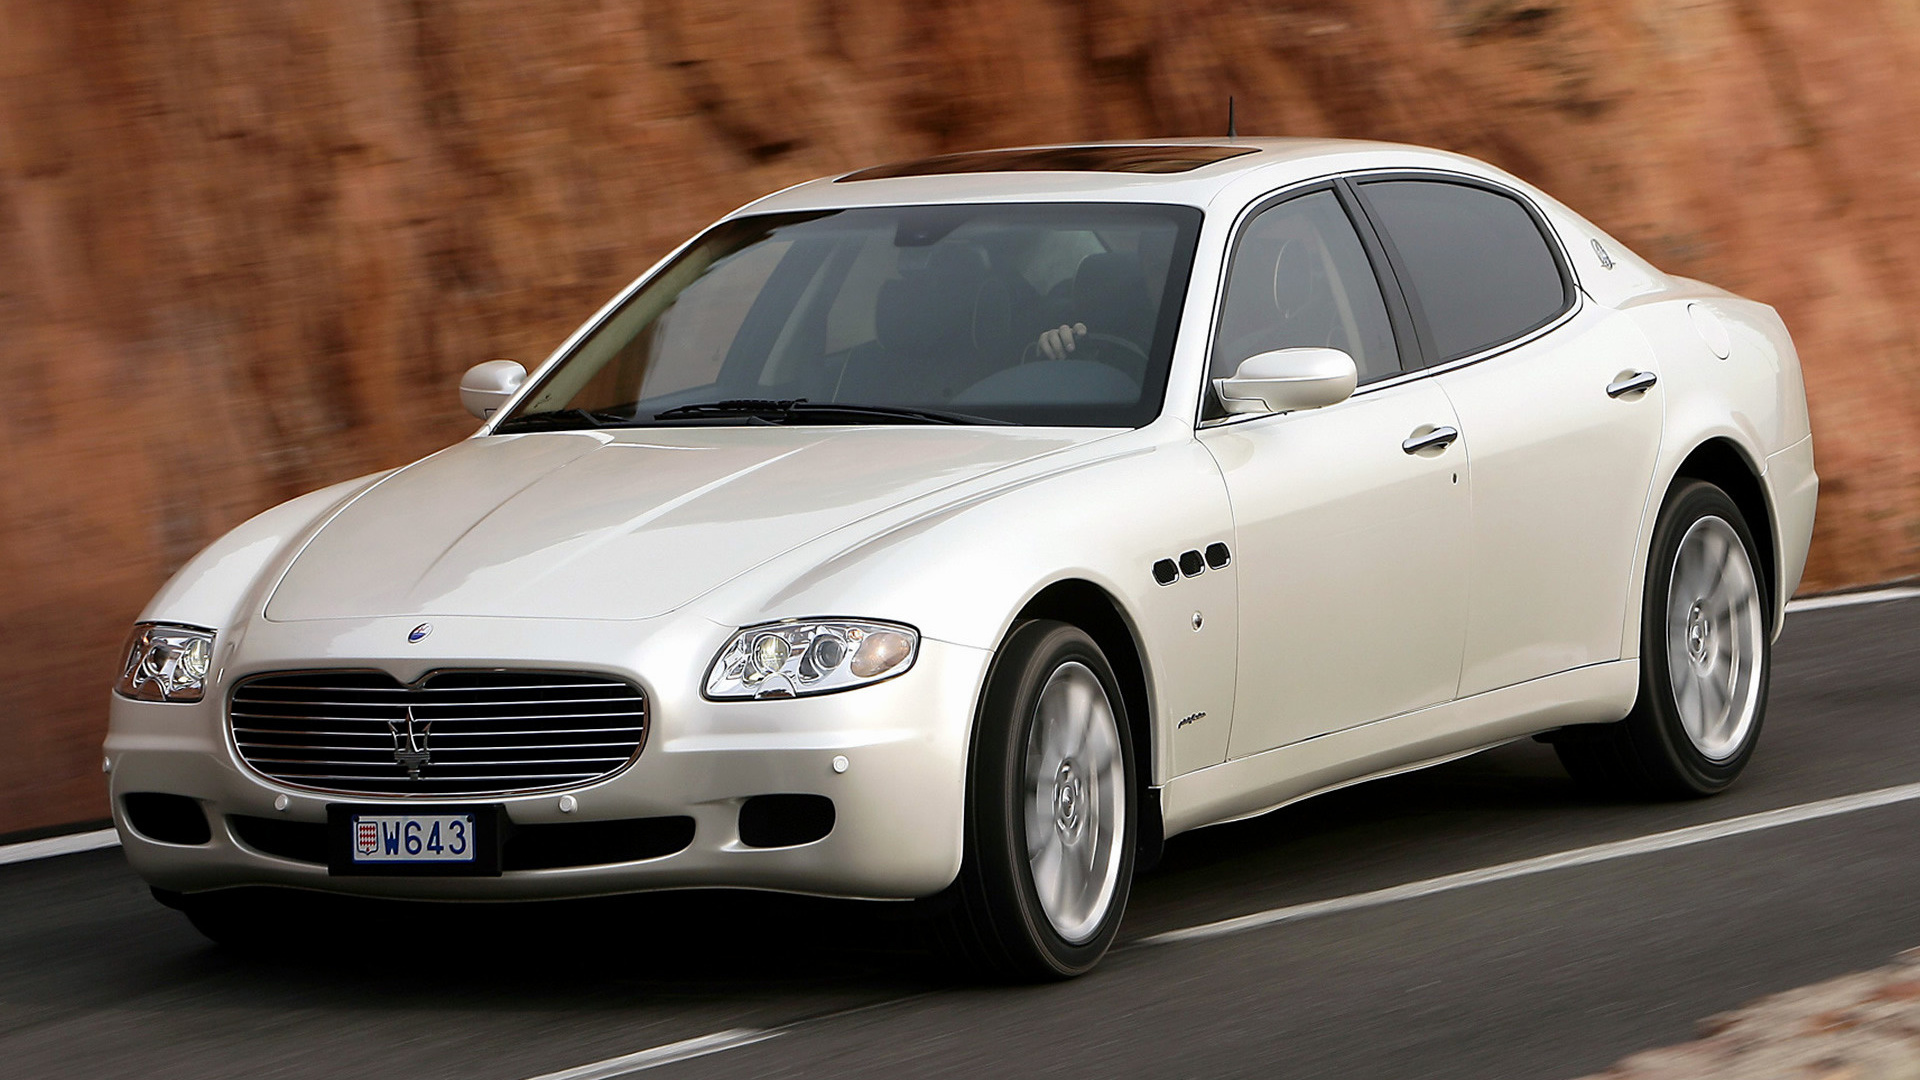 2004 Maserati Quattroporte - Wallpapers and HD Images ...